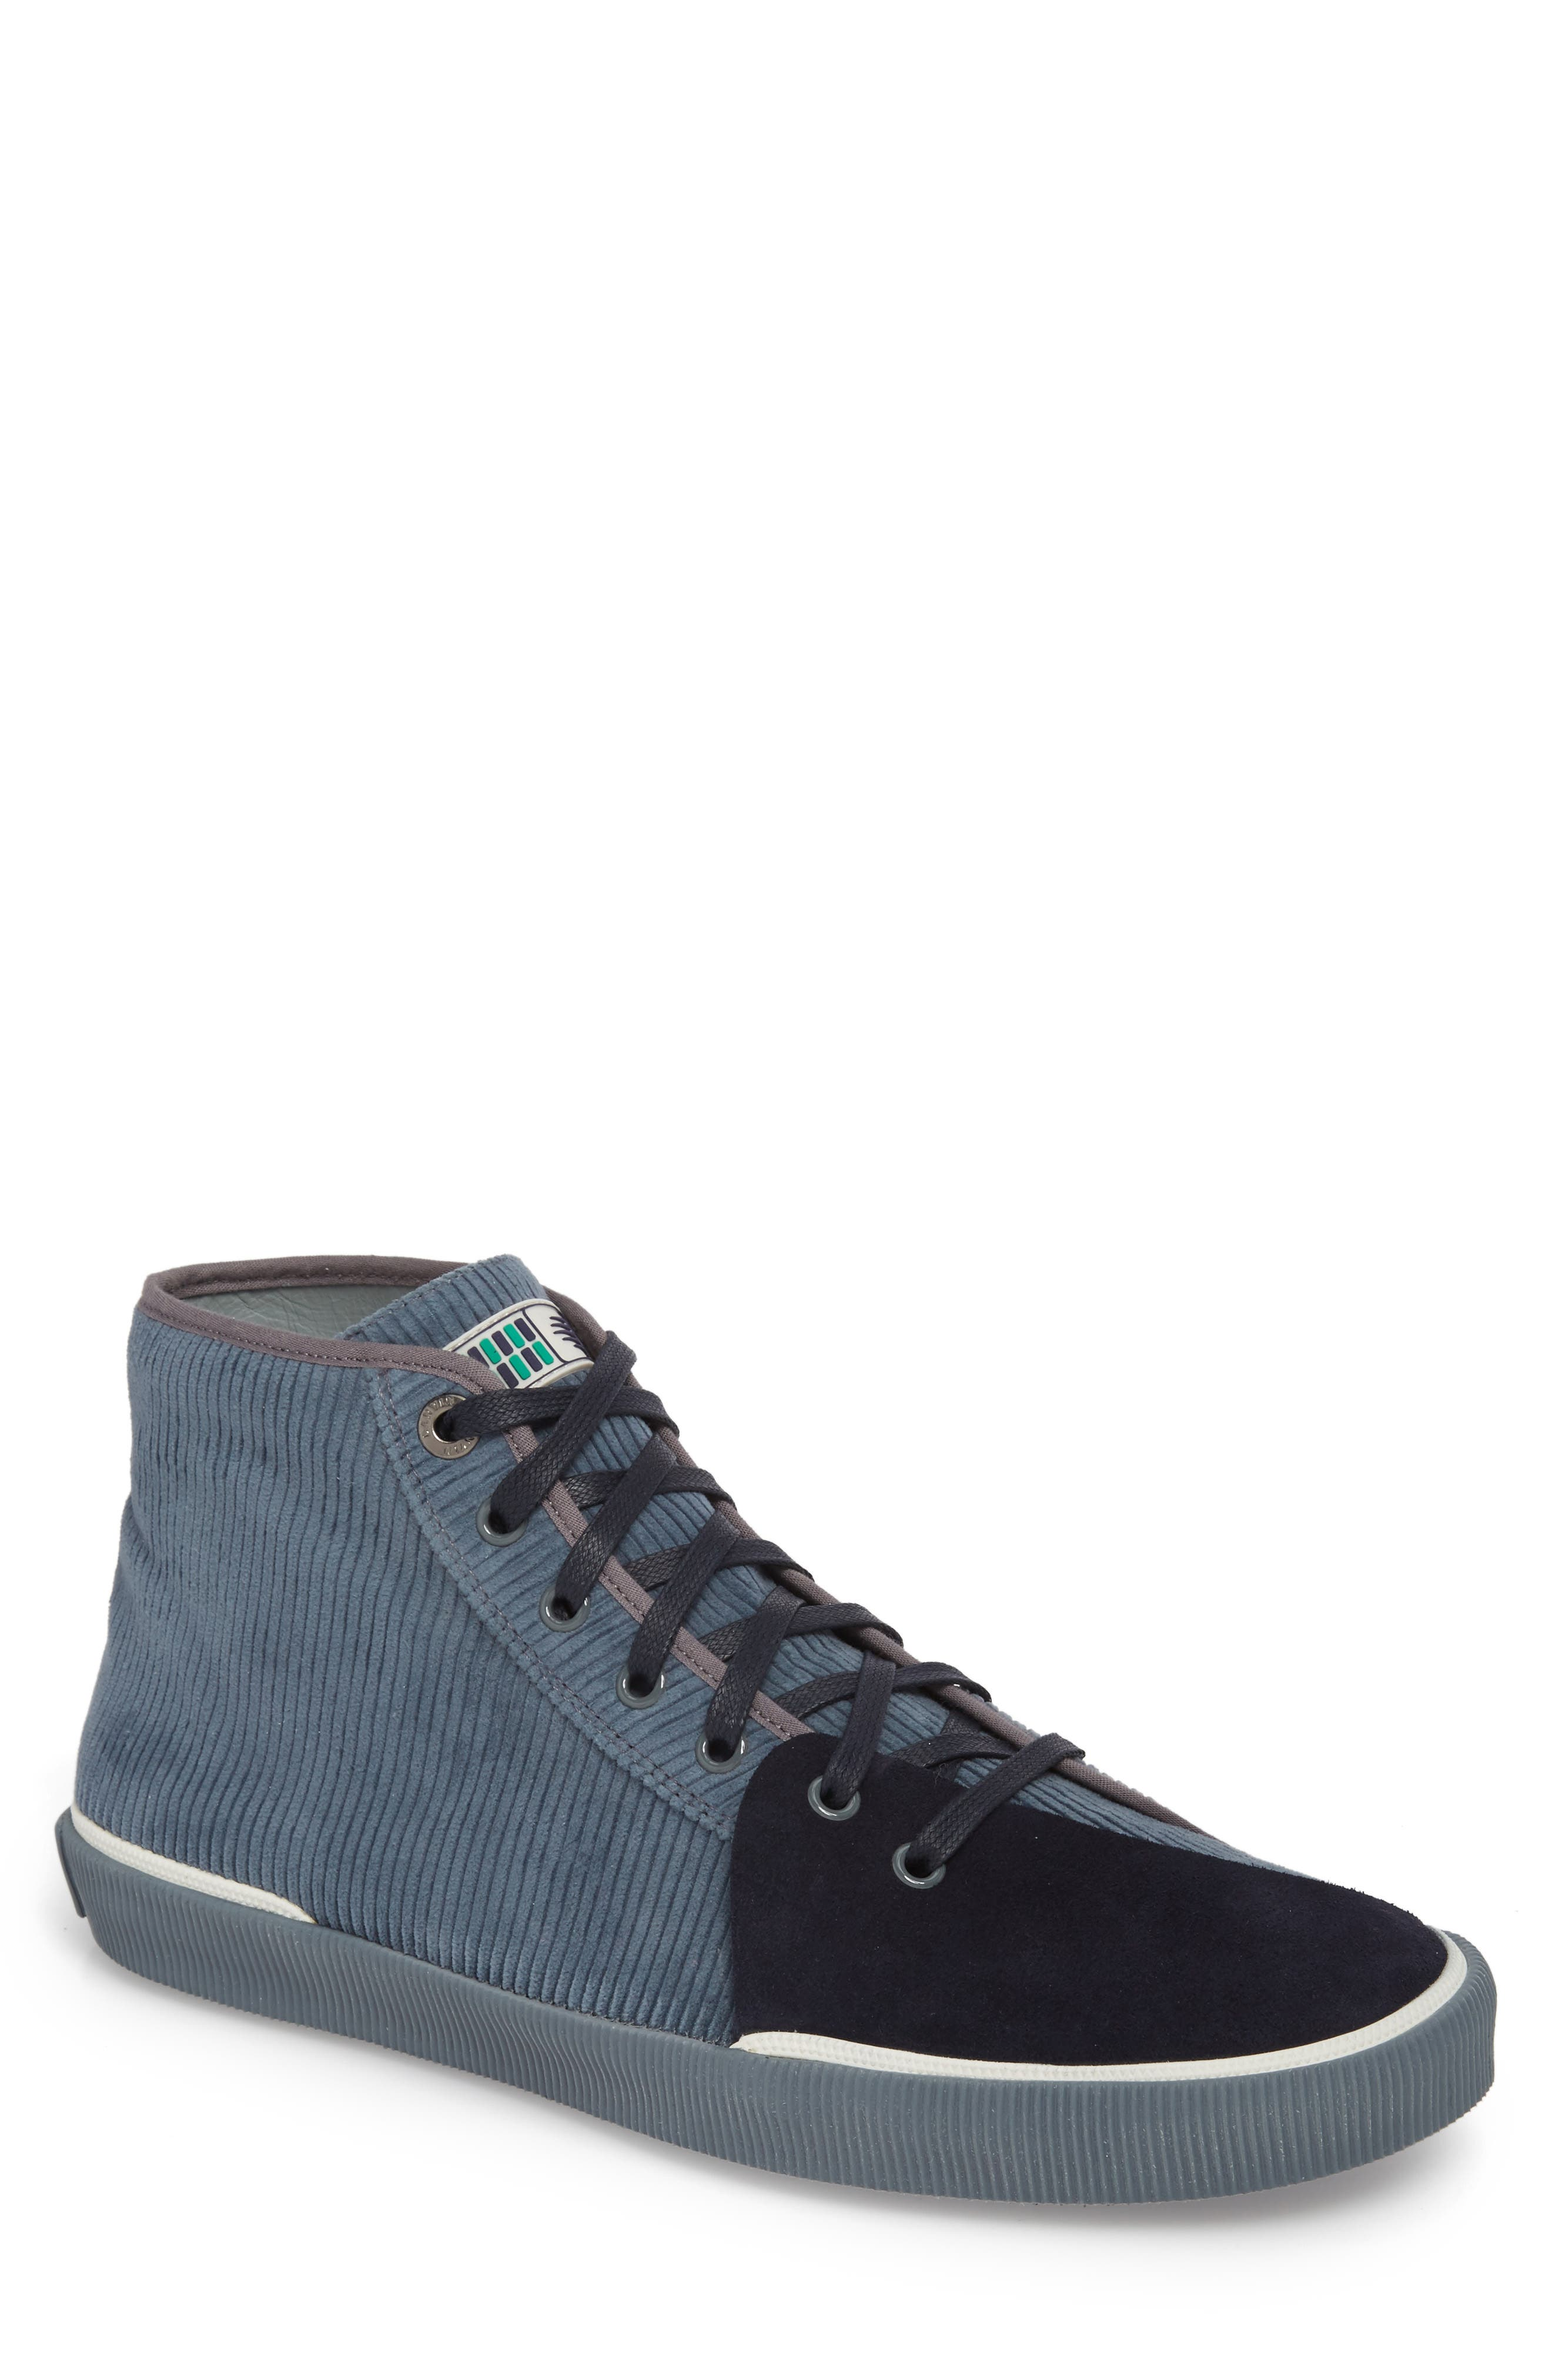 Mid Top Sneaker,                         Main,                         color, 030